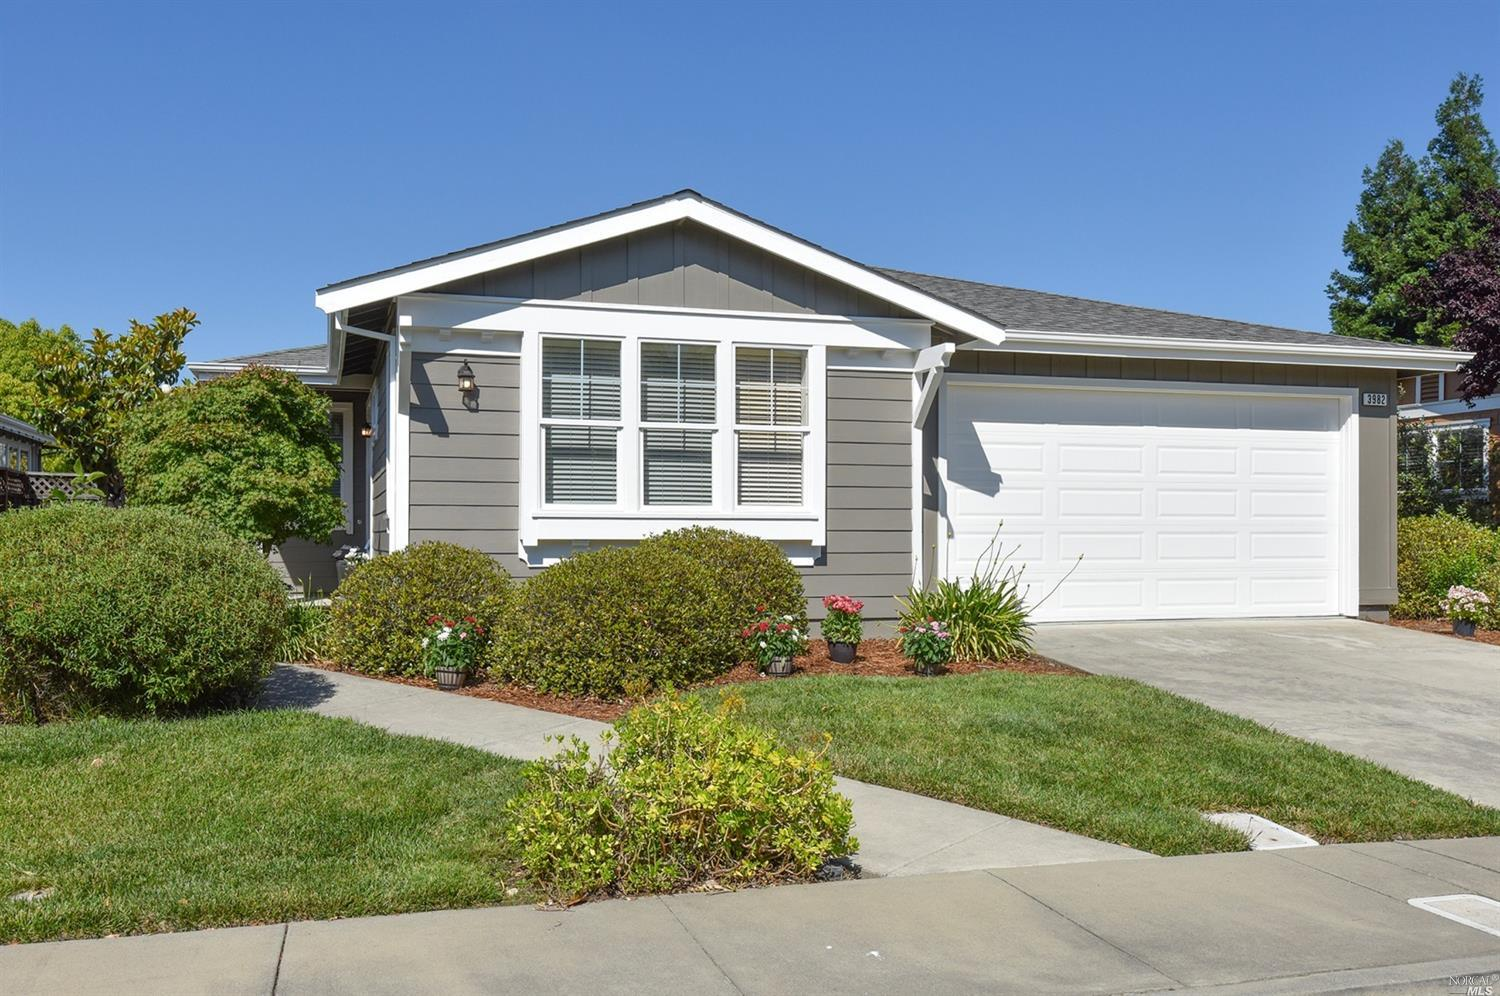 3982 Lucero Street Napa, California 94558, 3 Bedrooms Bedrooms, ,2 BathroomsBathrooms,Residential,For Sale,3982 Lucero,21915644